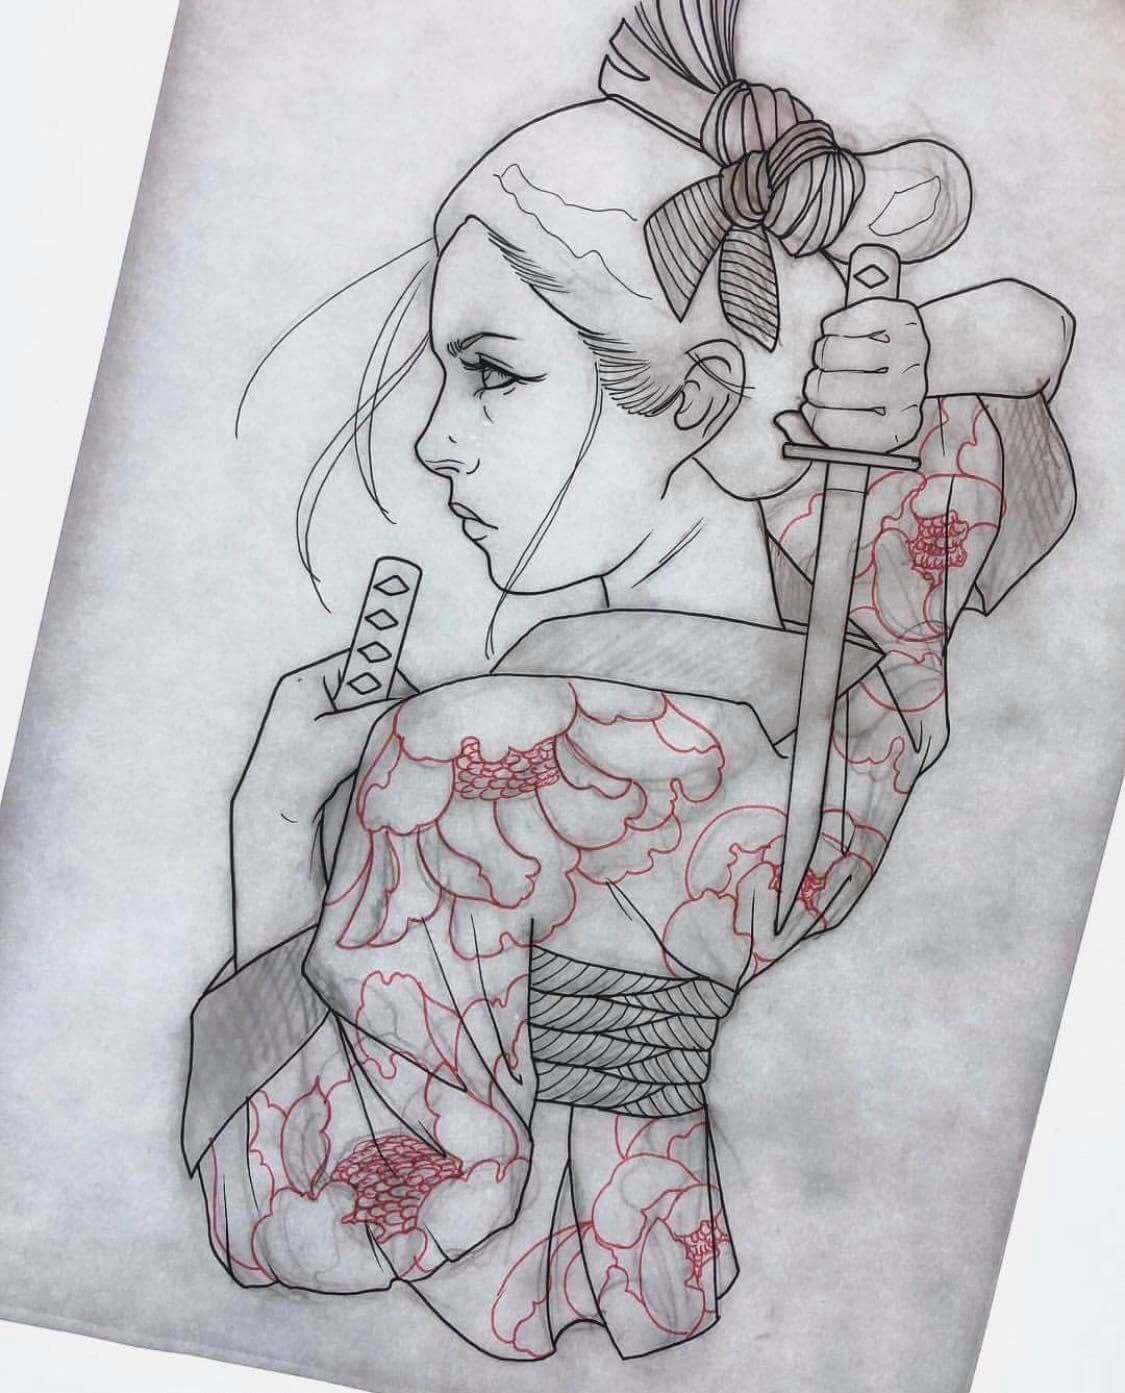 I Unquestionably Adore The Tones Outlines And Detail This Is A Wonderful Artwork If You Want A Ja Tatuajes Japoneses Diseno Tatuaje Geisha Bocetos Tatuajes